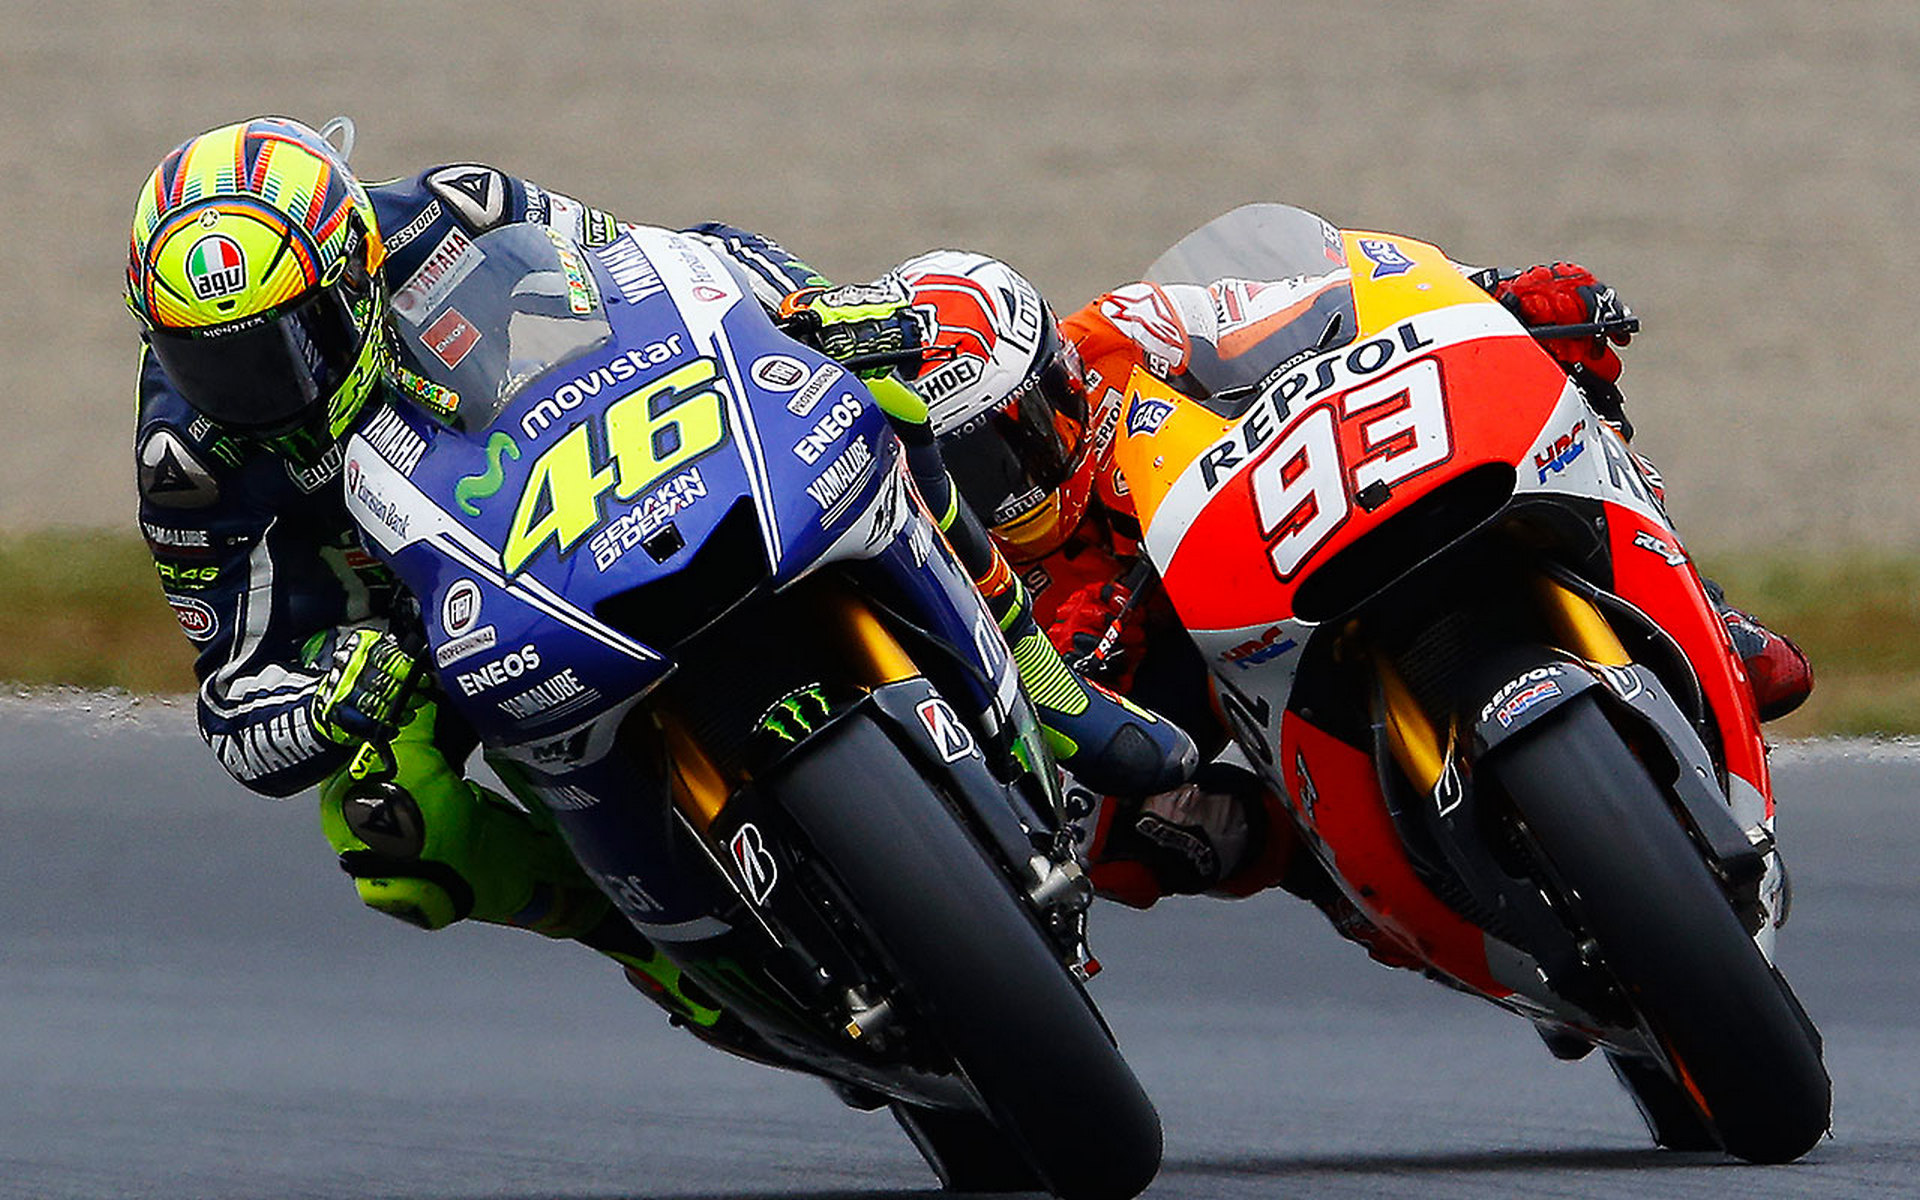 Valentino Rossi Wallpapers High Resolution